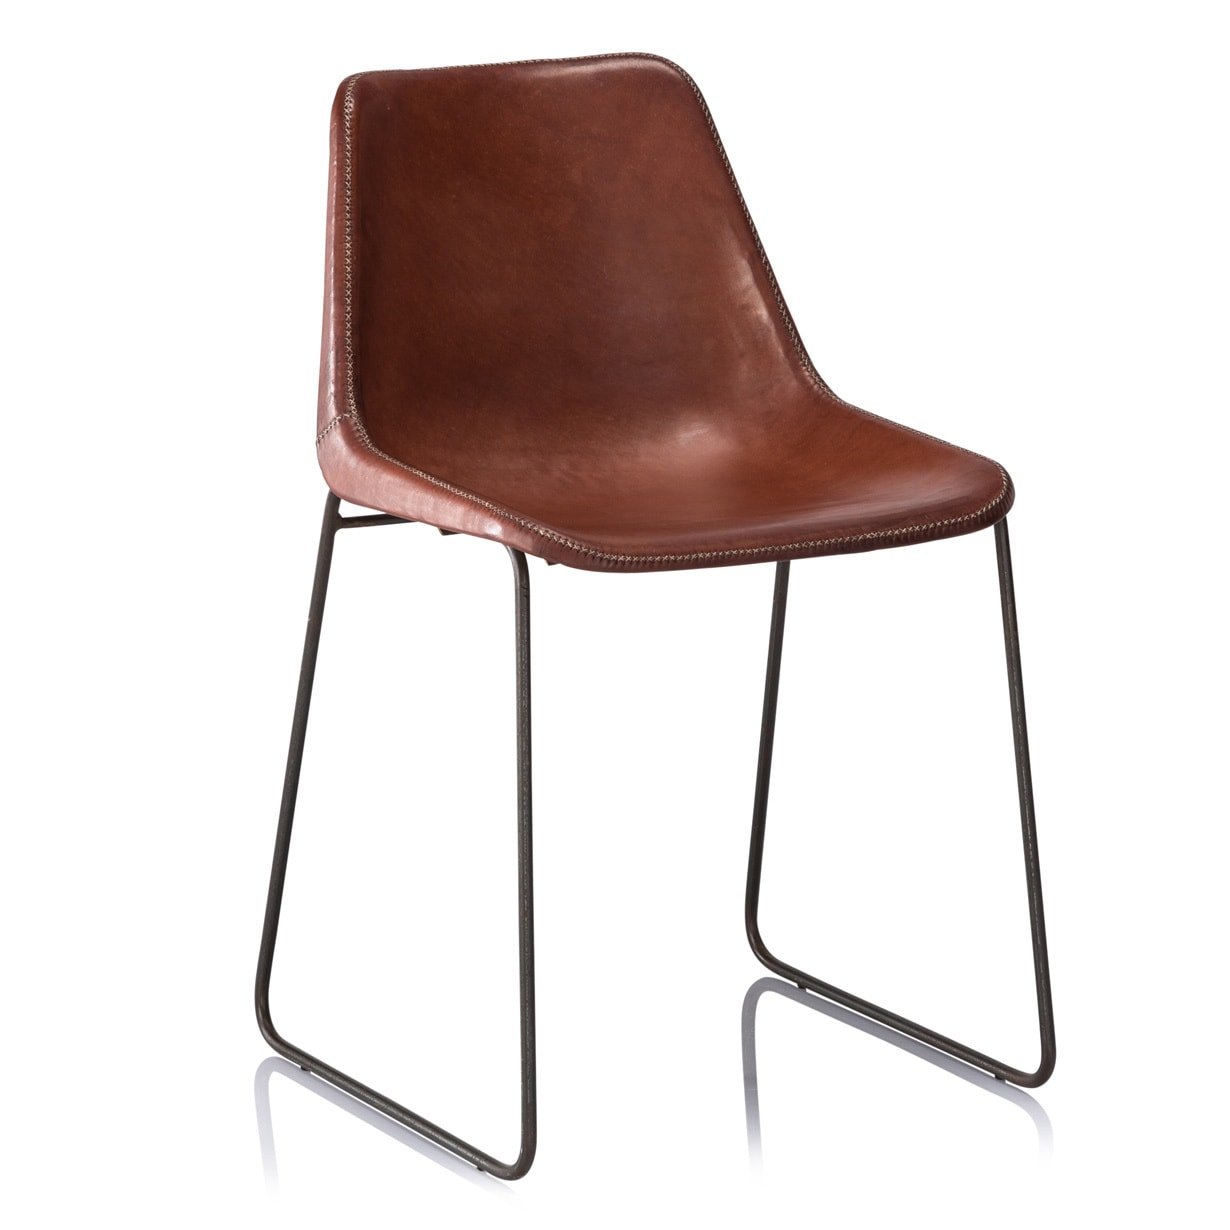 overstock com chairs web folding chair hudson brown leather dinning free shipping on